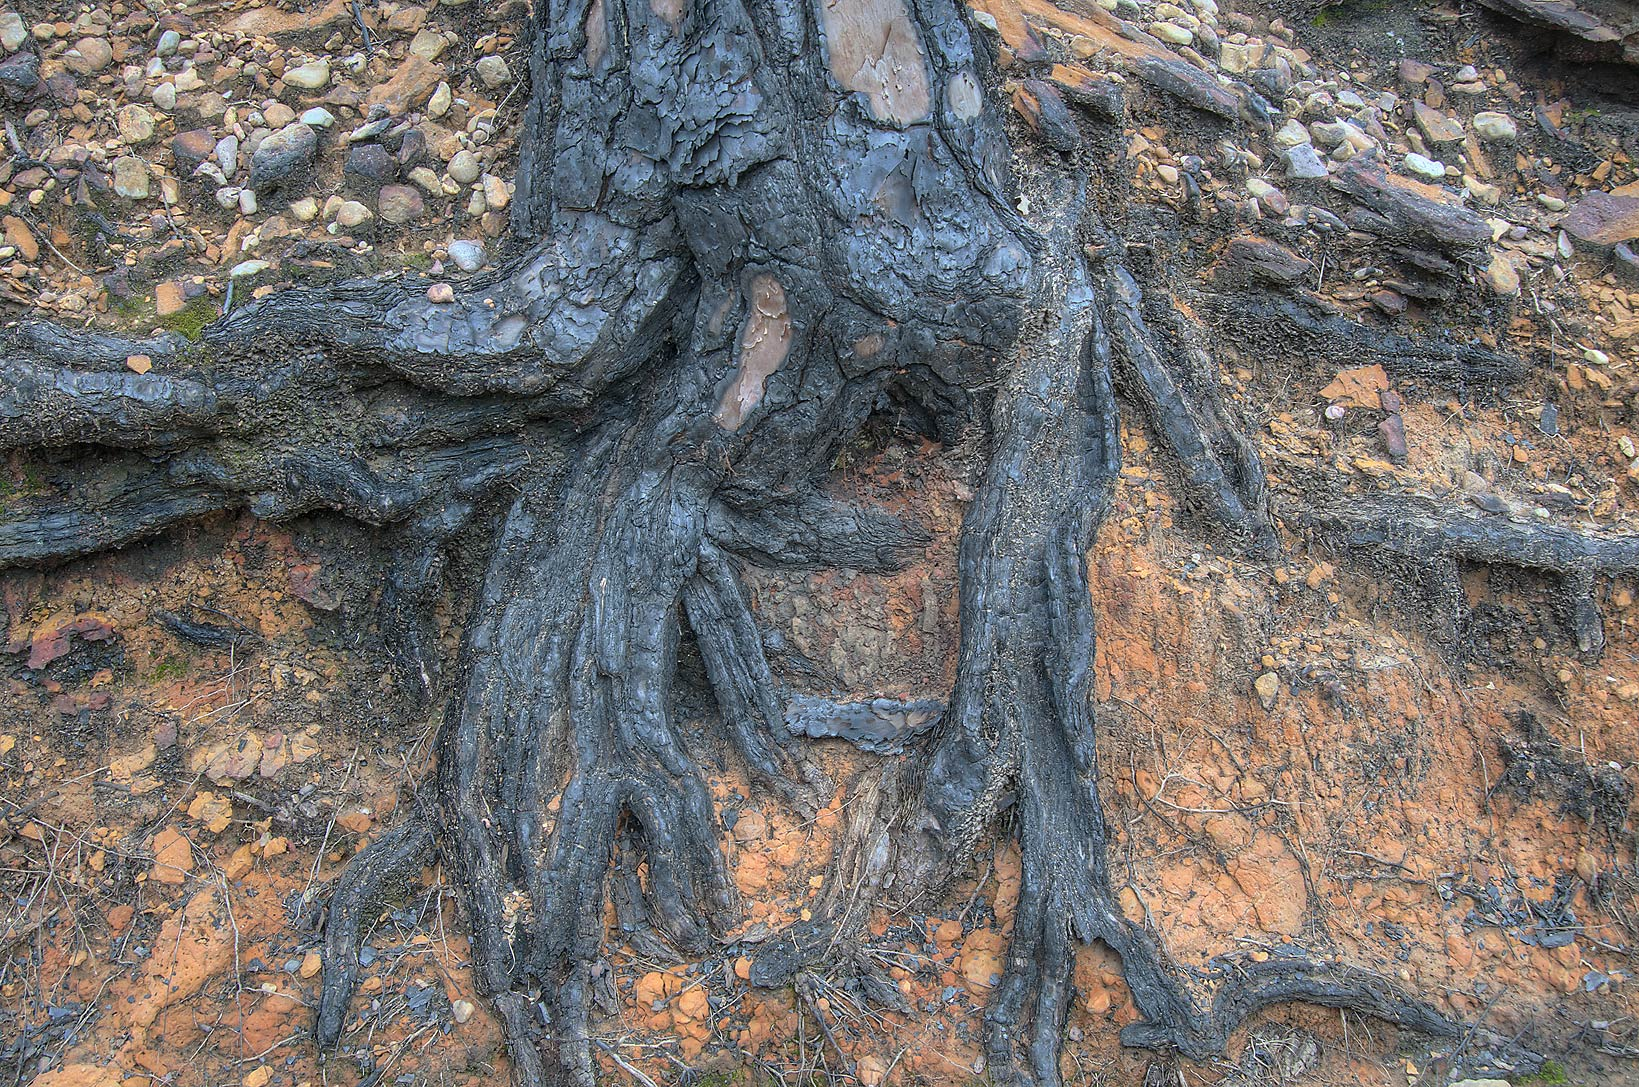 Blackened pine roots in Bastrop State Park. Bastrop, Texas